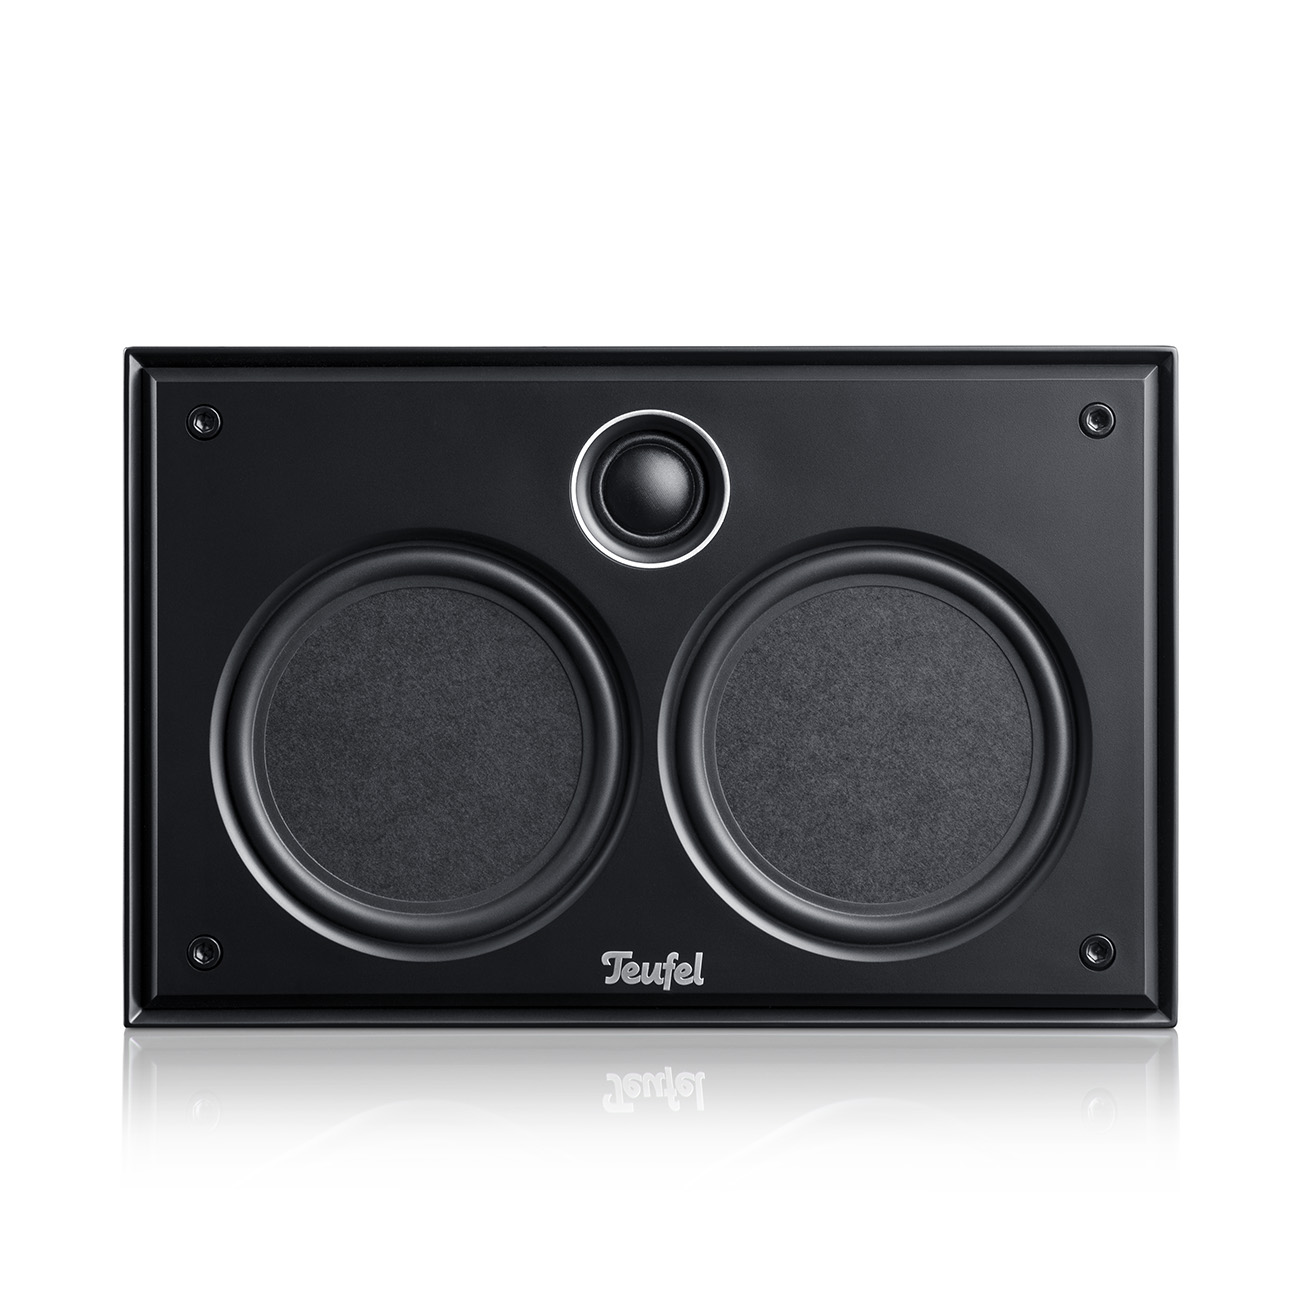 system-6-thx-select-fcr-front-straight-black-1300x1300x72.jpg